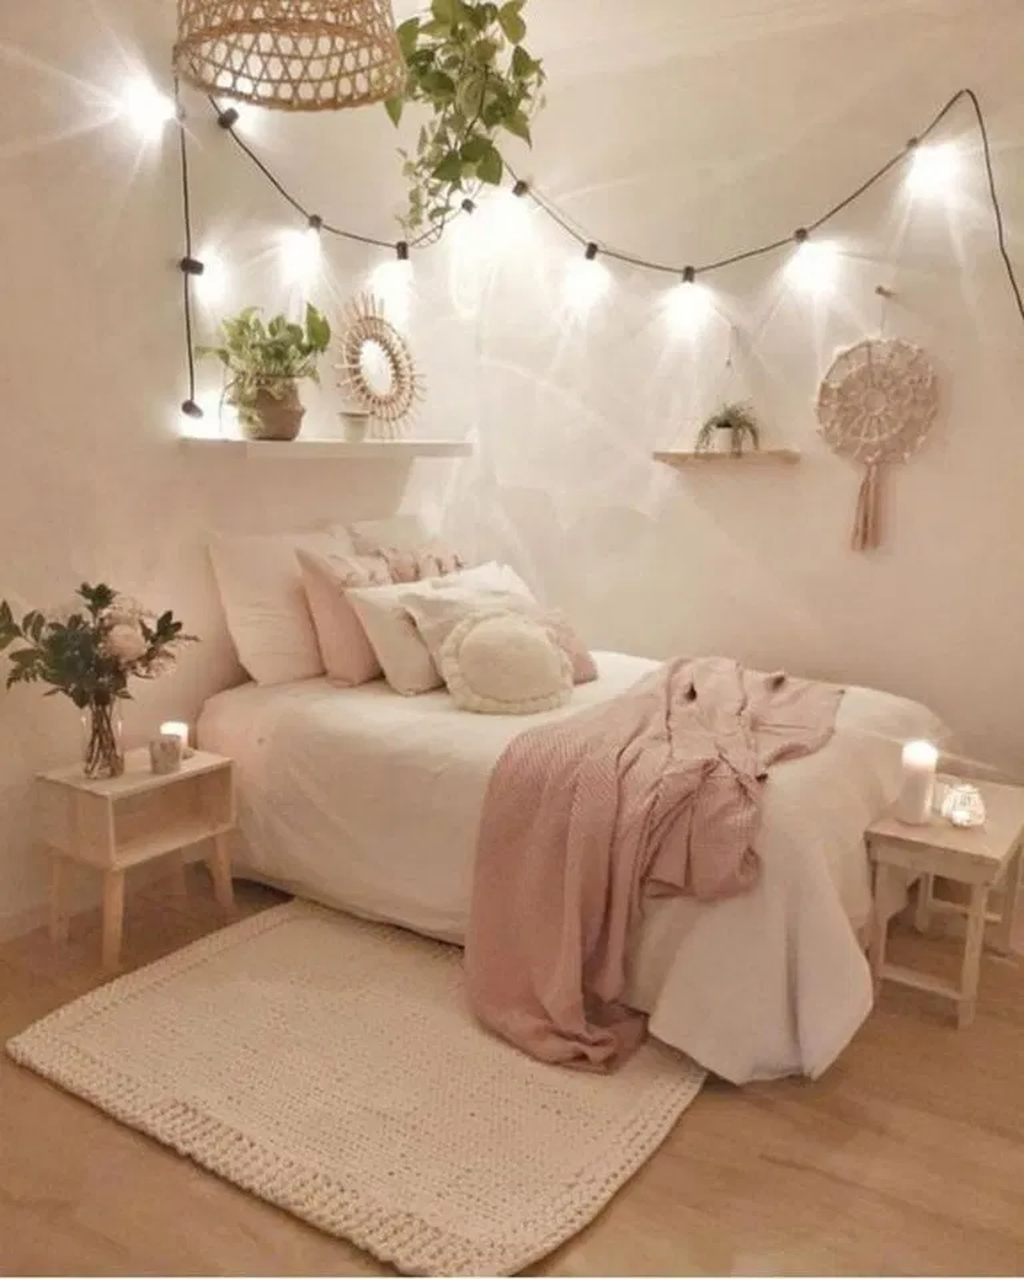 32 Fabulous Small Apartment Bedroom Design Ideas In 2020